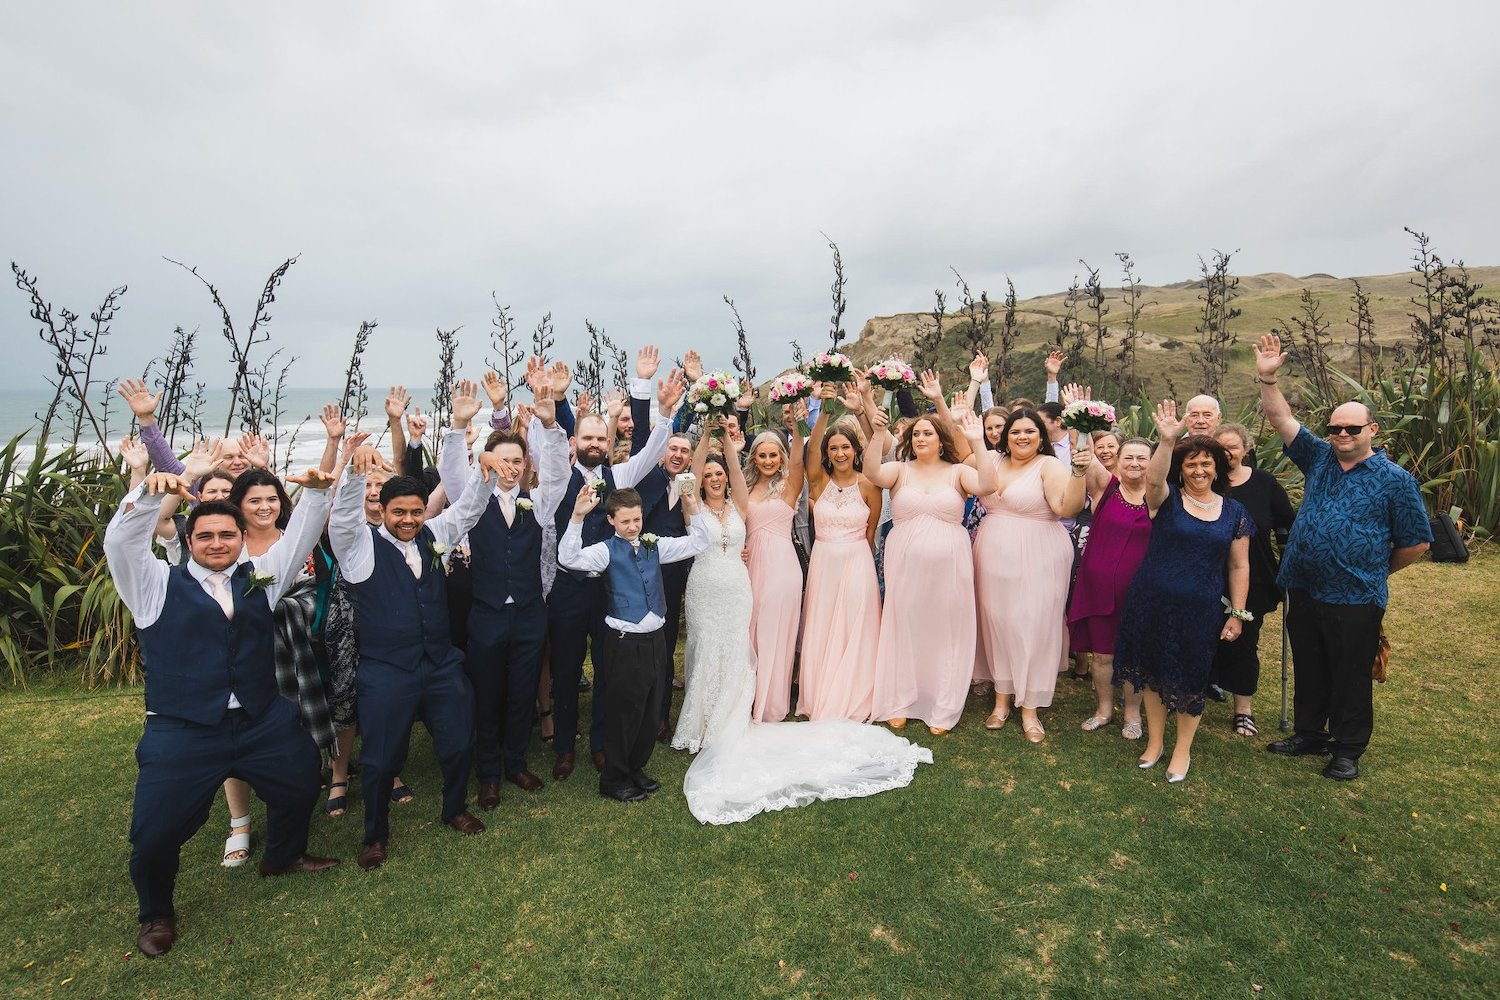 Family Focused Wedding at Castaways Resort